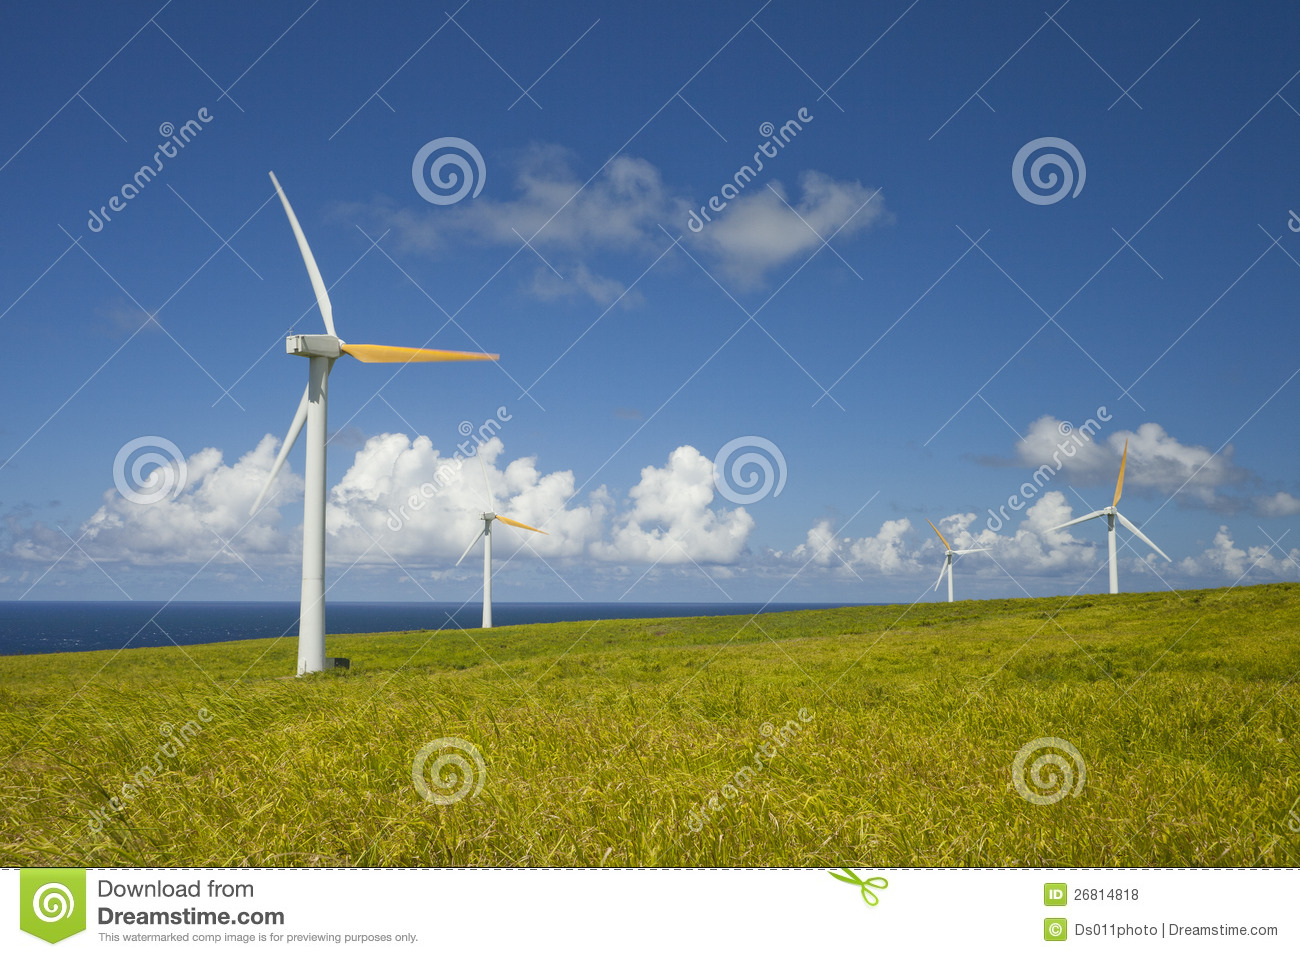 ... Free Stock Photos: Green ecology, Alternative wind energy sources